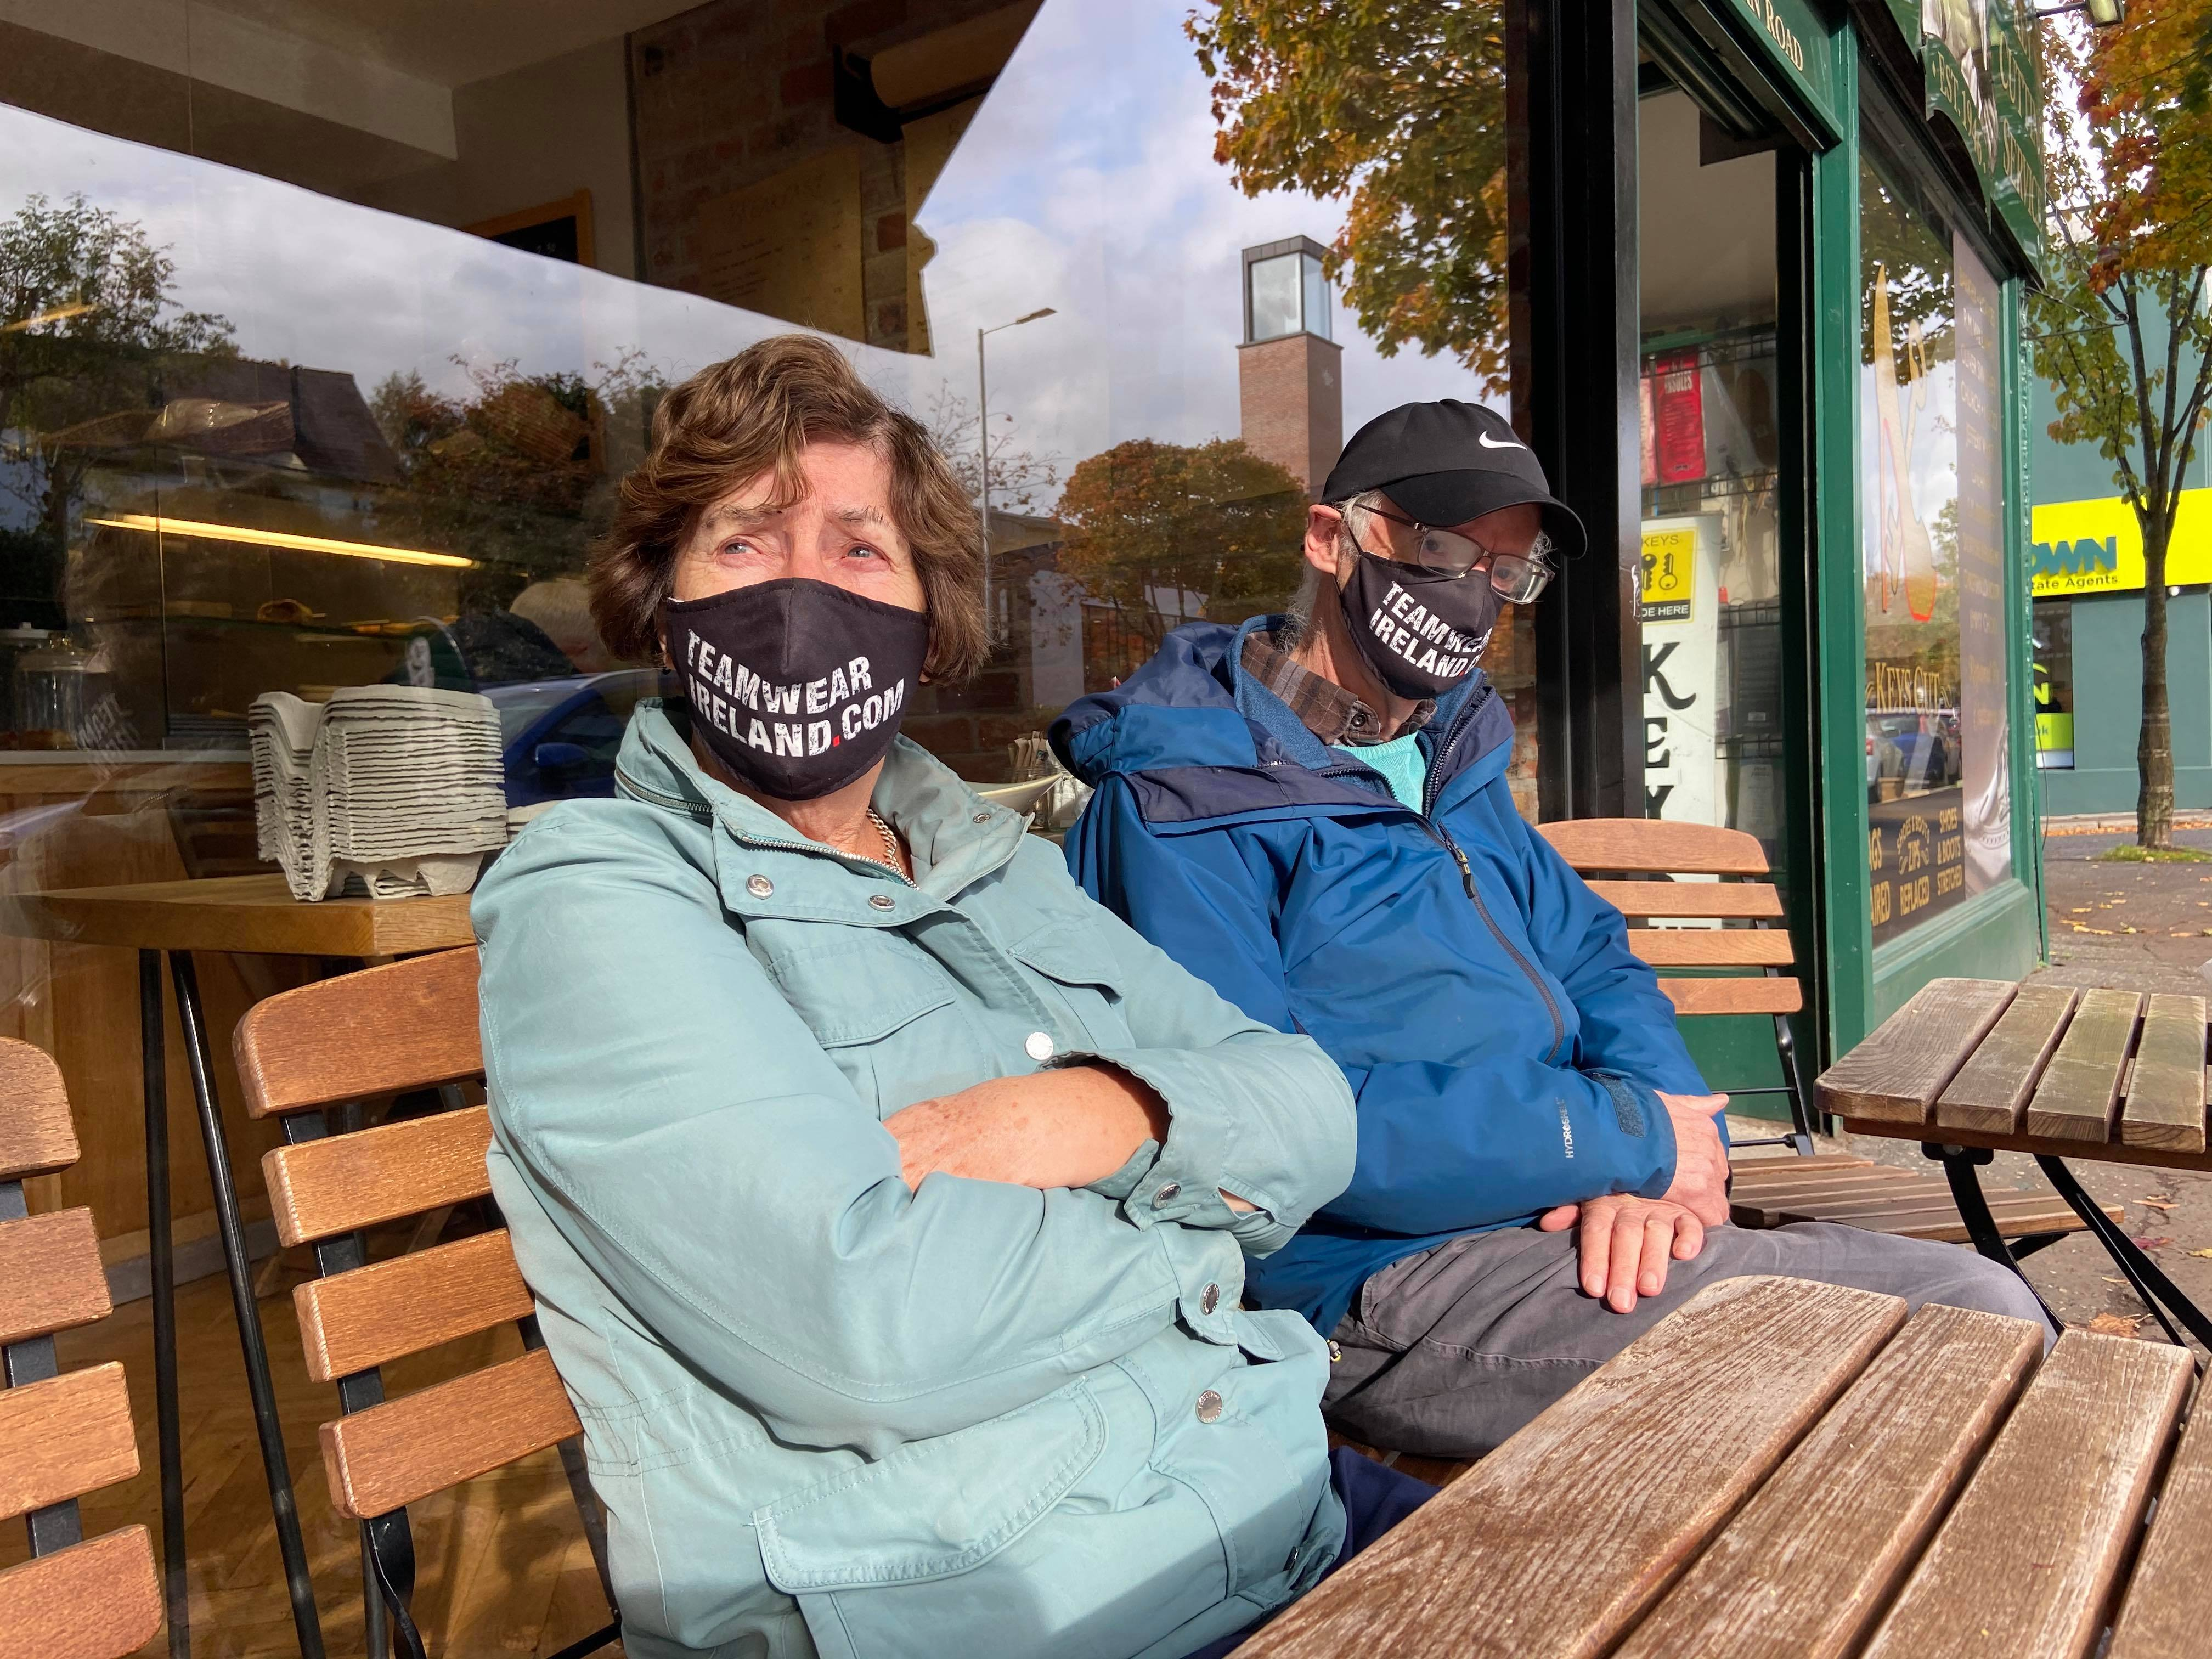 LOCKDOWN ON WAY: This couple outside a Belfast café were pictured just before the new lockdown protocols come into force at 6pm this evening